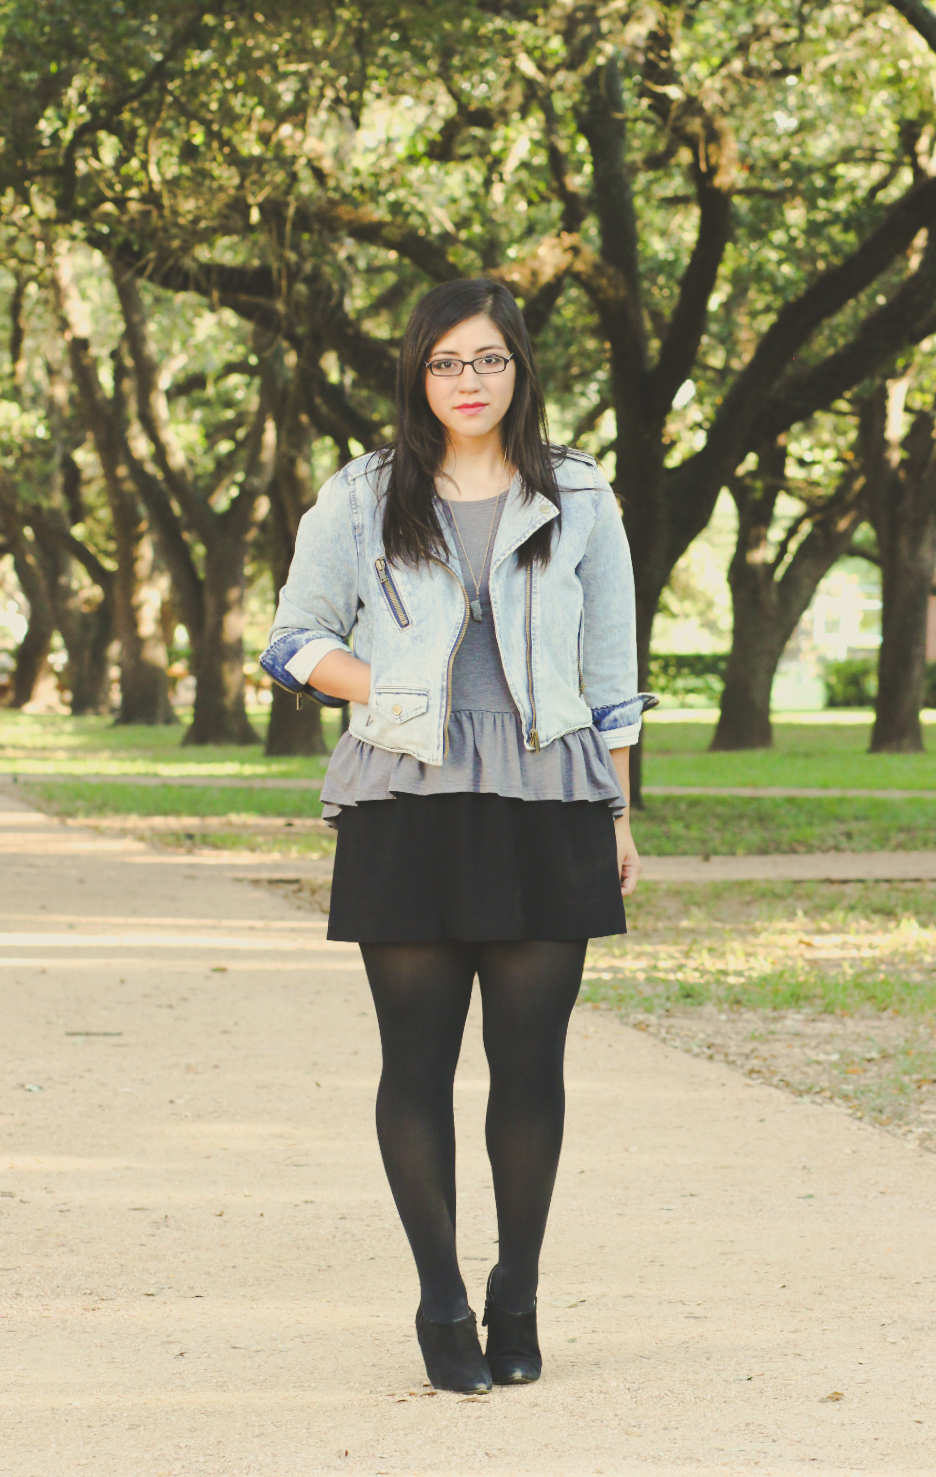 Leah from Morning Ink: Denim jacket, grey peplum top, black skirt, booties